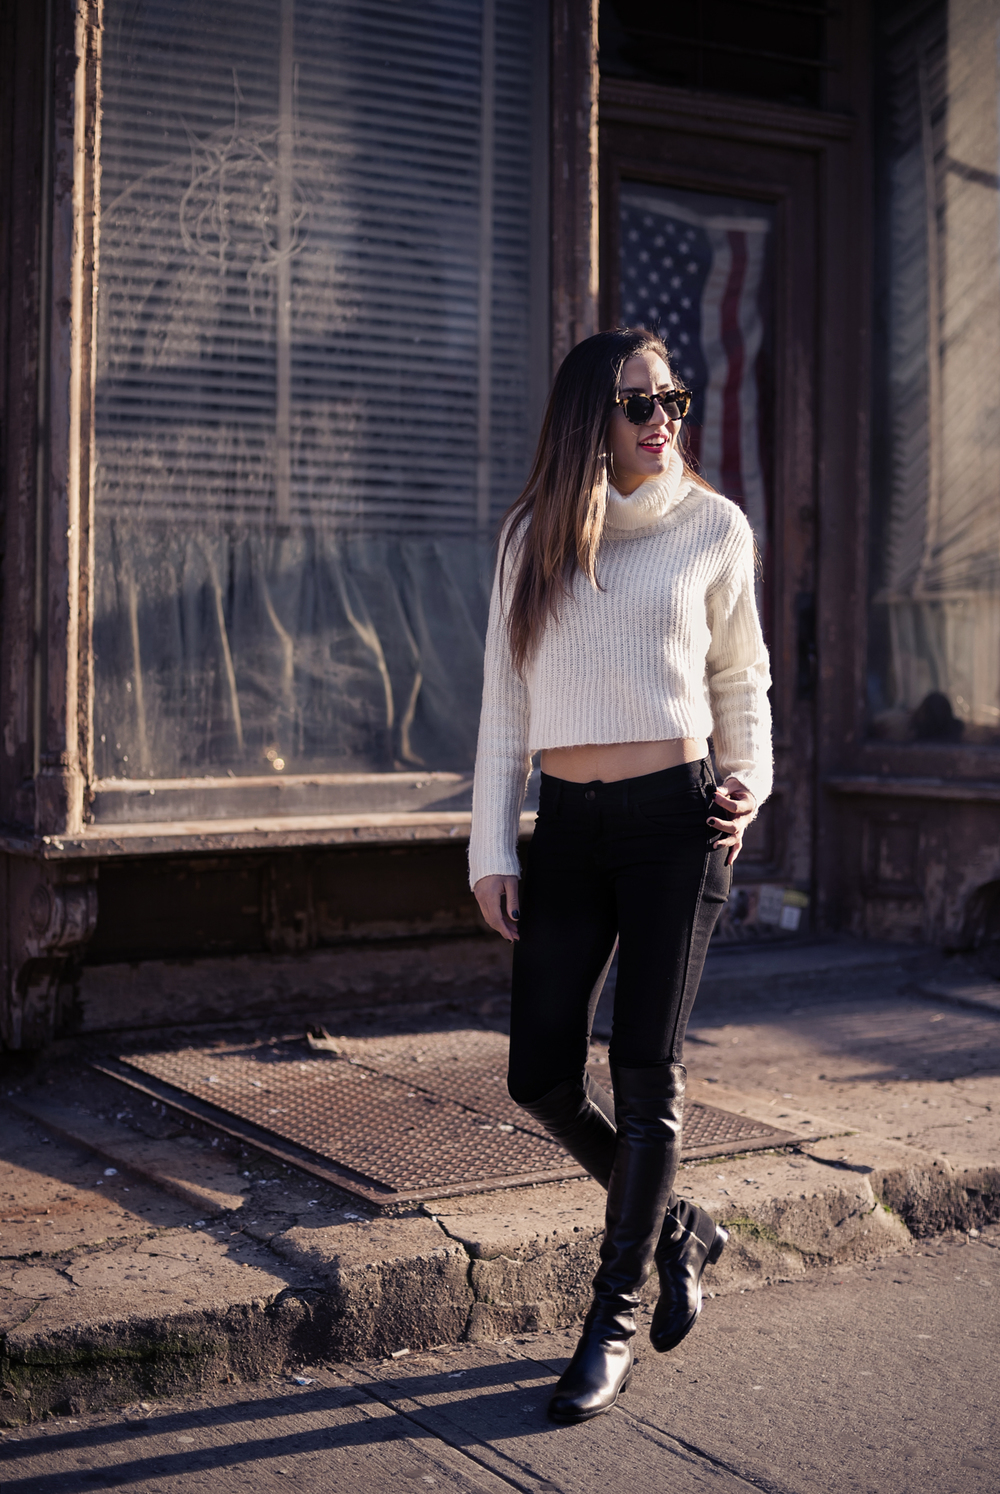 raquel_paiva_fashion_blogger_driggs_brooklyn_williamsburg